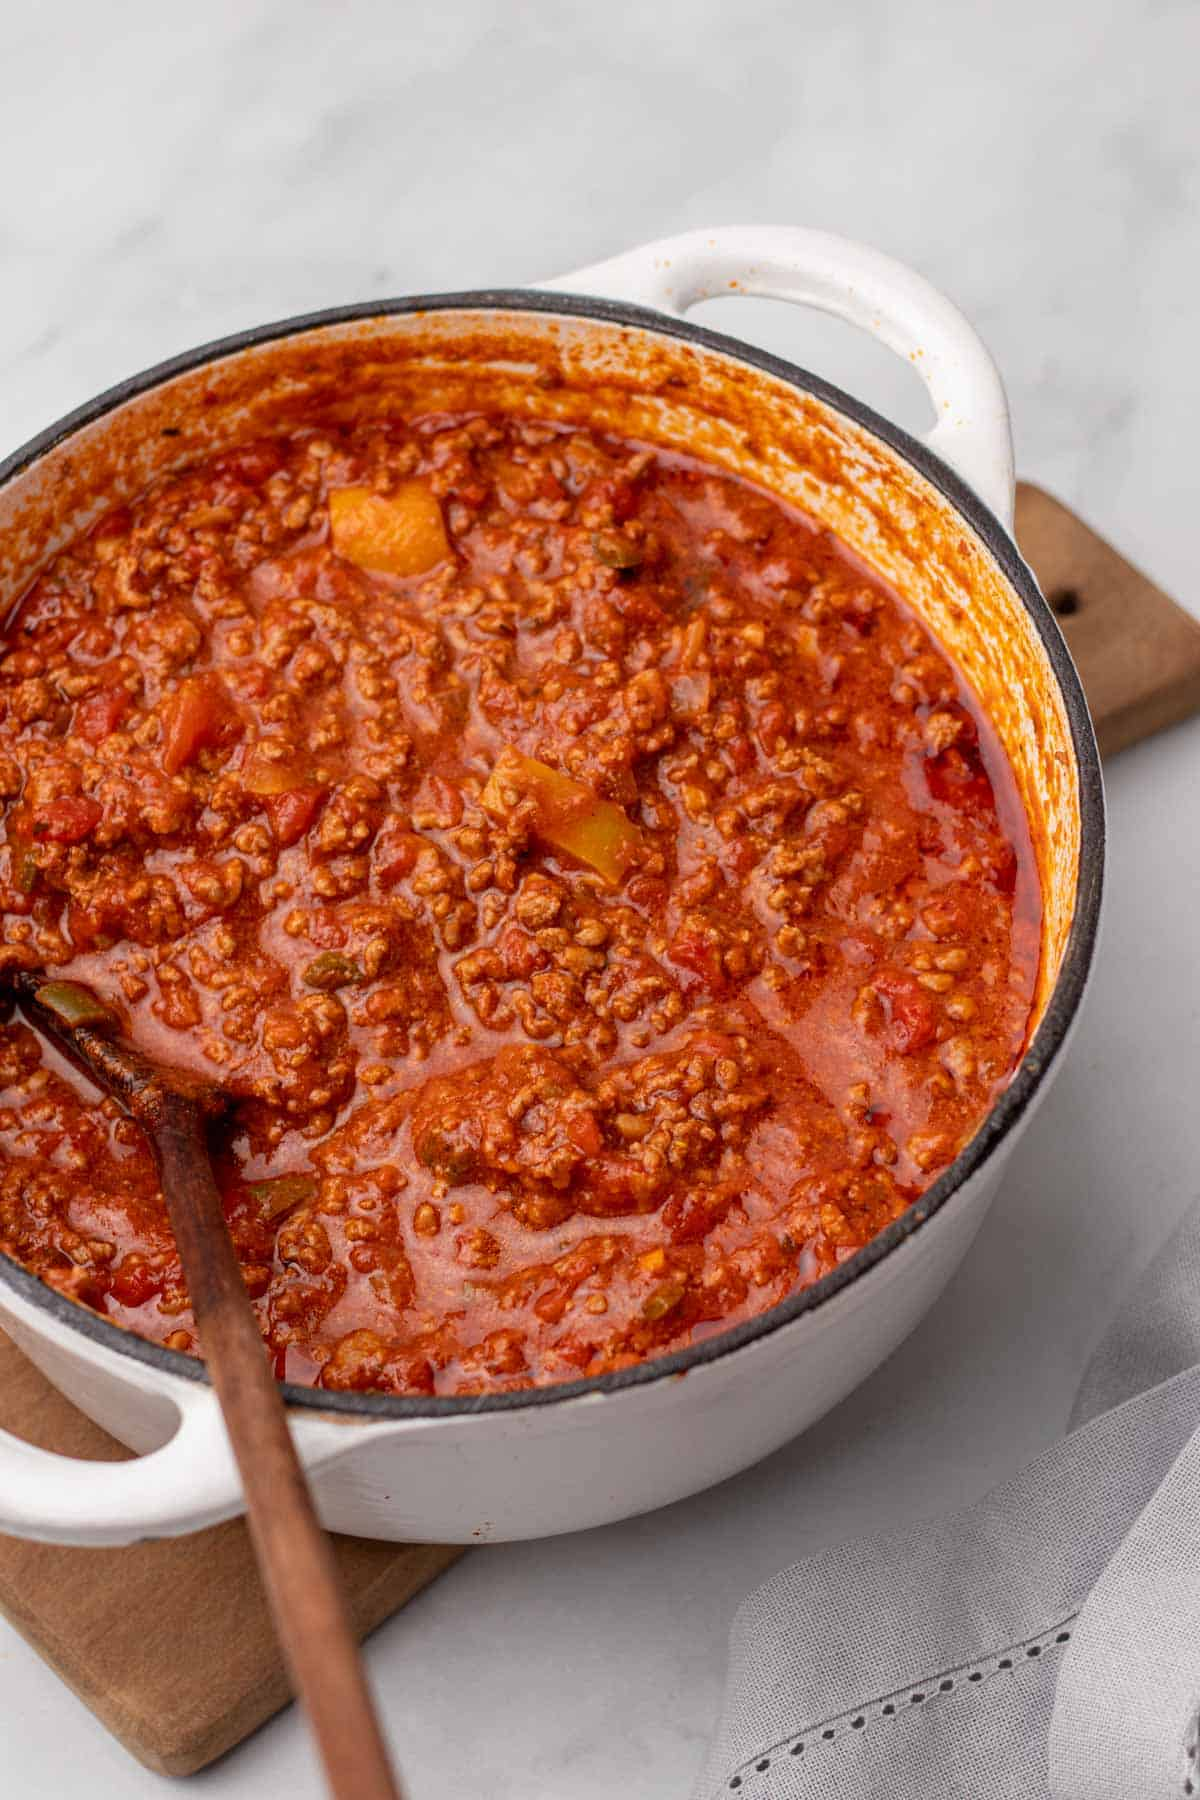 Chili in a white pot with a wooden spoon